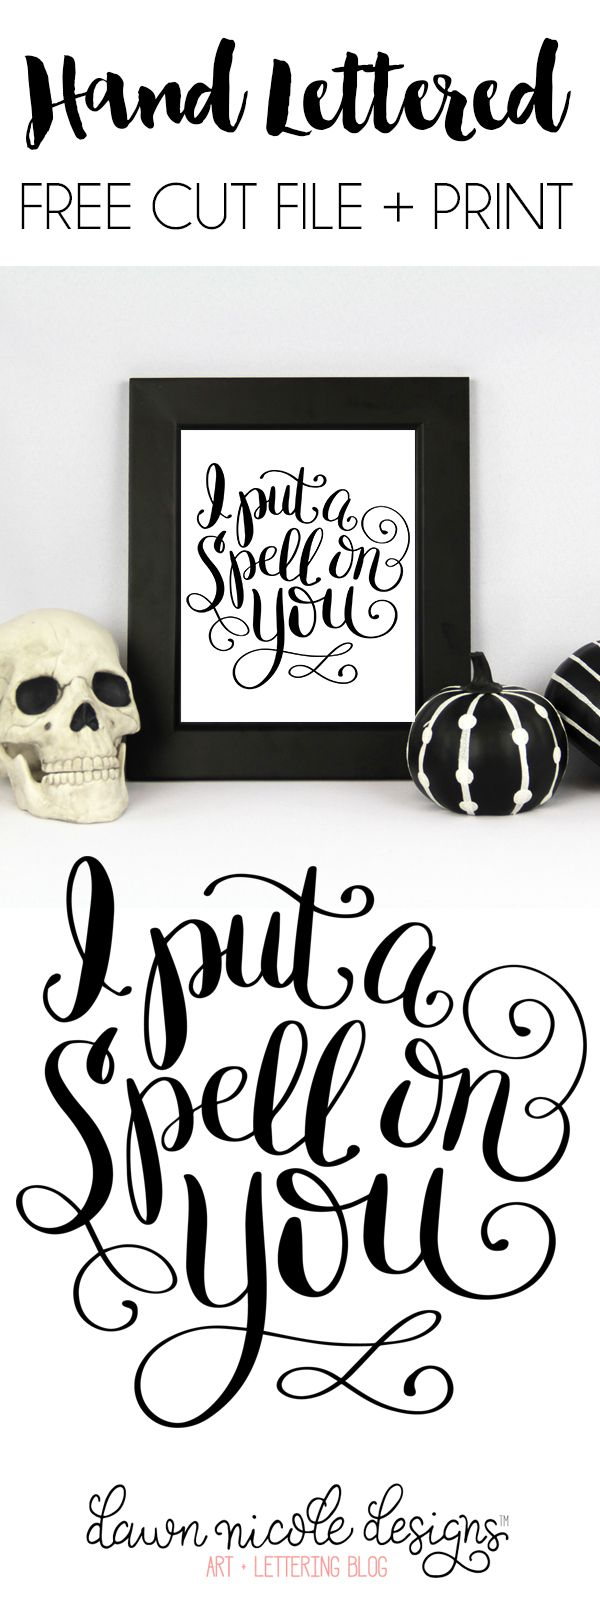 hand lettered spell on you free print cut file - Free Images To Print